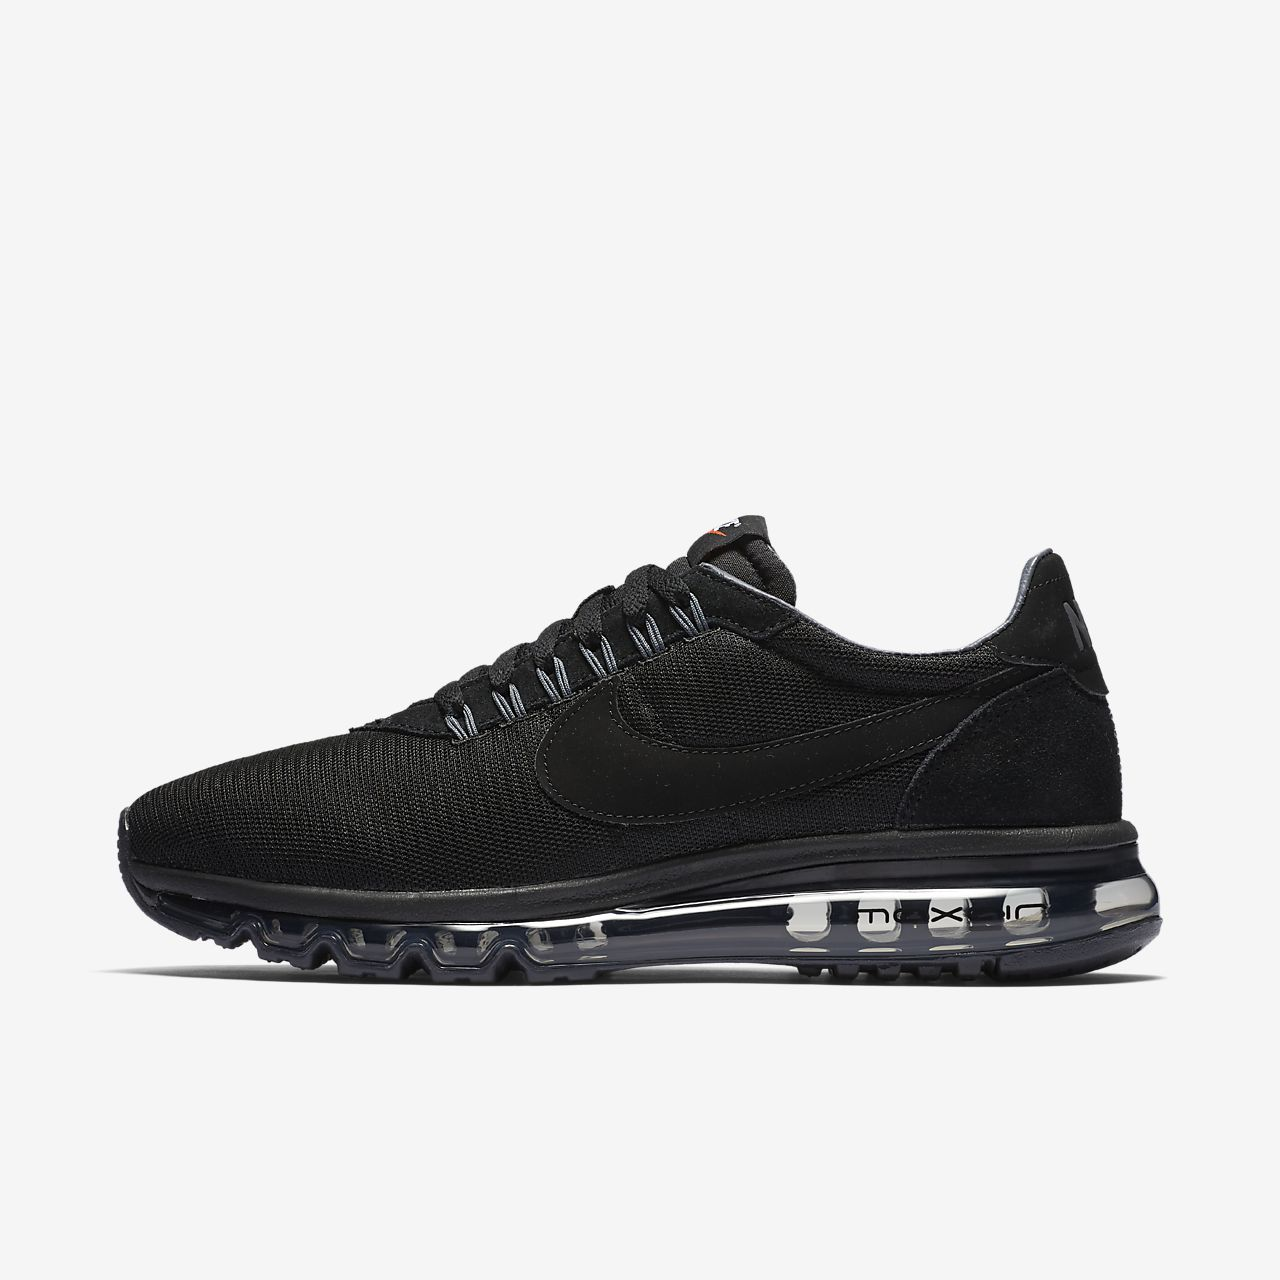 0594075e641 Réduction authentique air max ld zero noir femme Baskets - panier-bio-cressonniere.fr.  air max ld zero noir femme